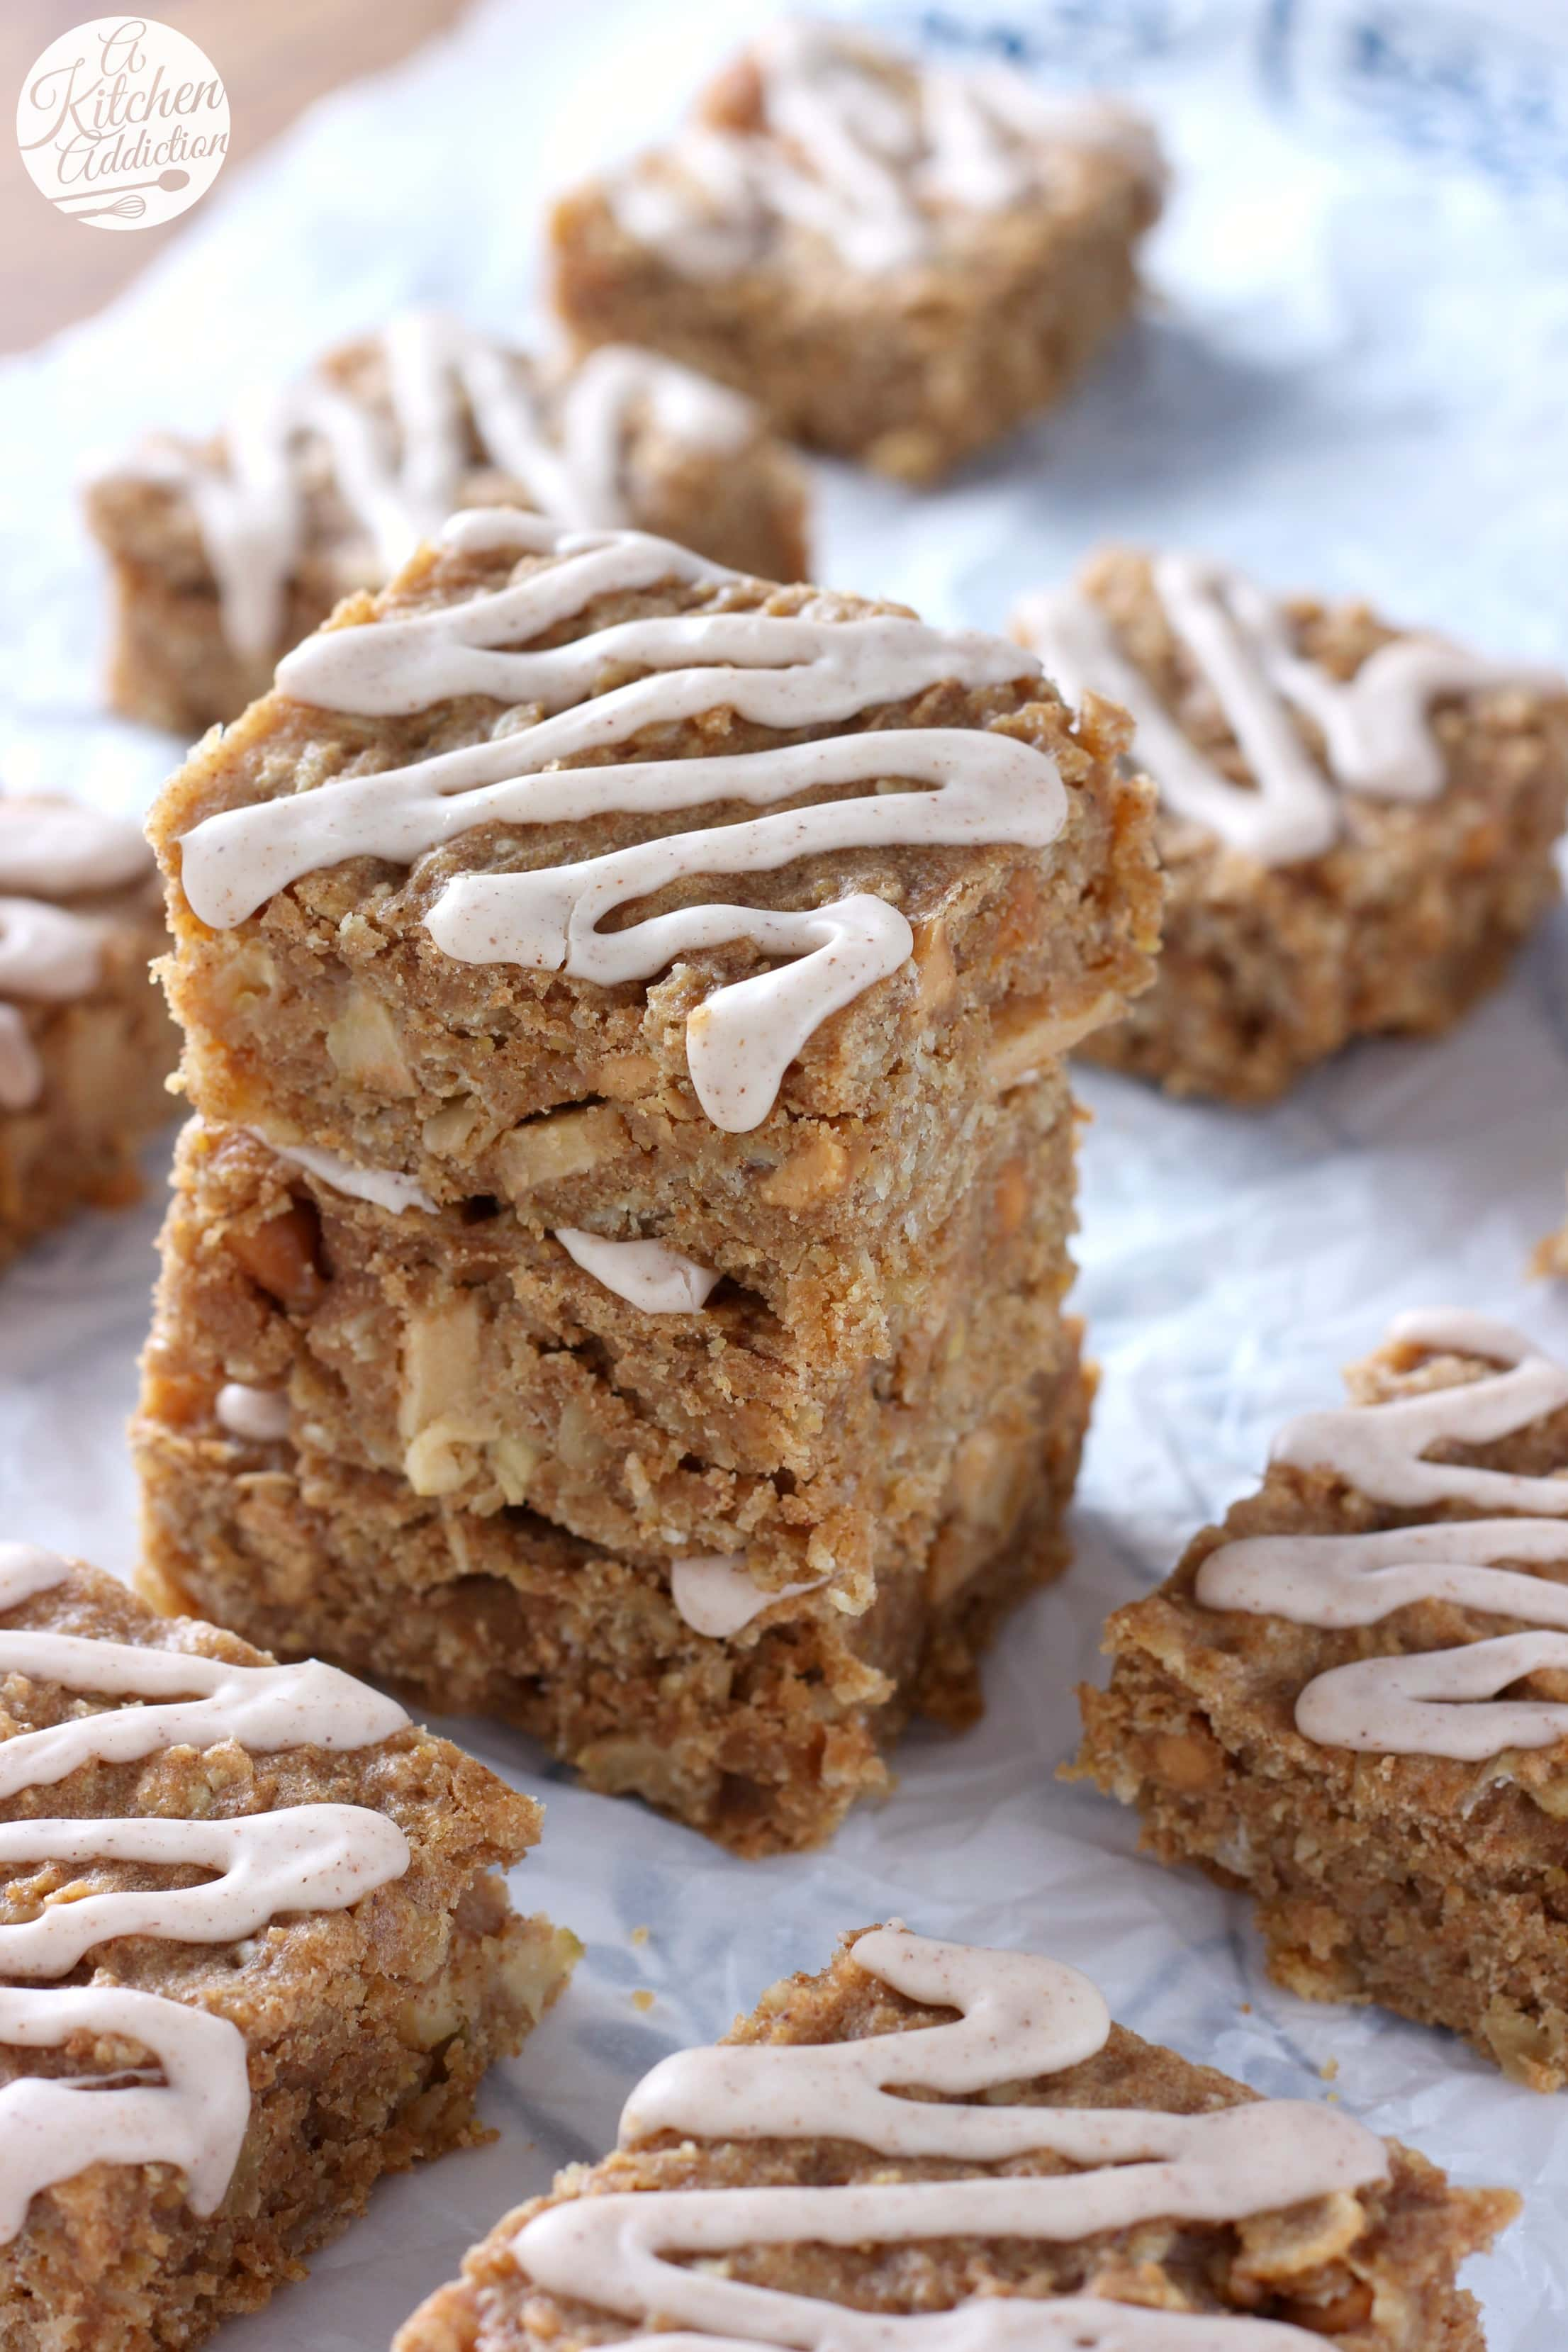 Soft Baked Apple Peanut Butter Oat Bars Recipe from A Kitchen Addiction